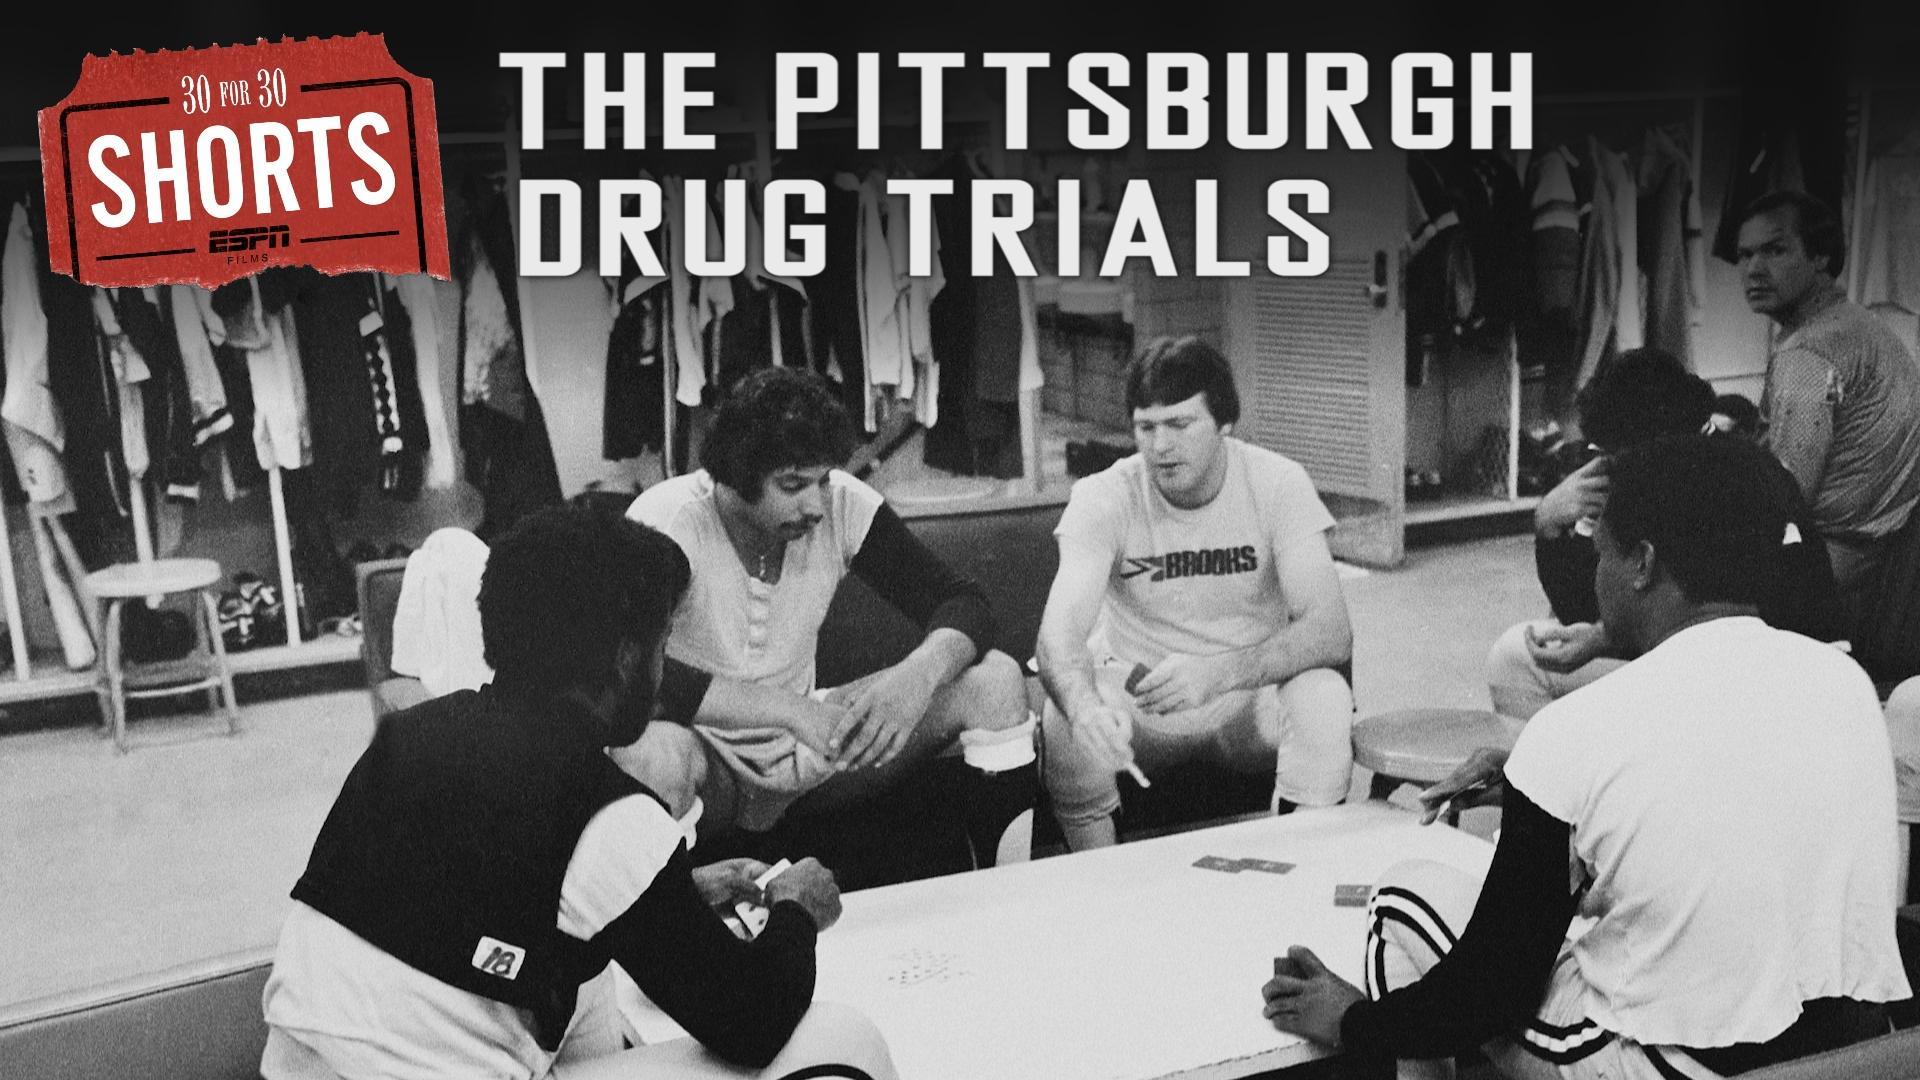 30 for 30 Shorts: The Pittsburgh Drug Trials